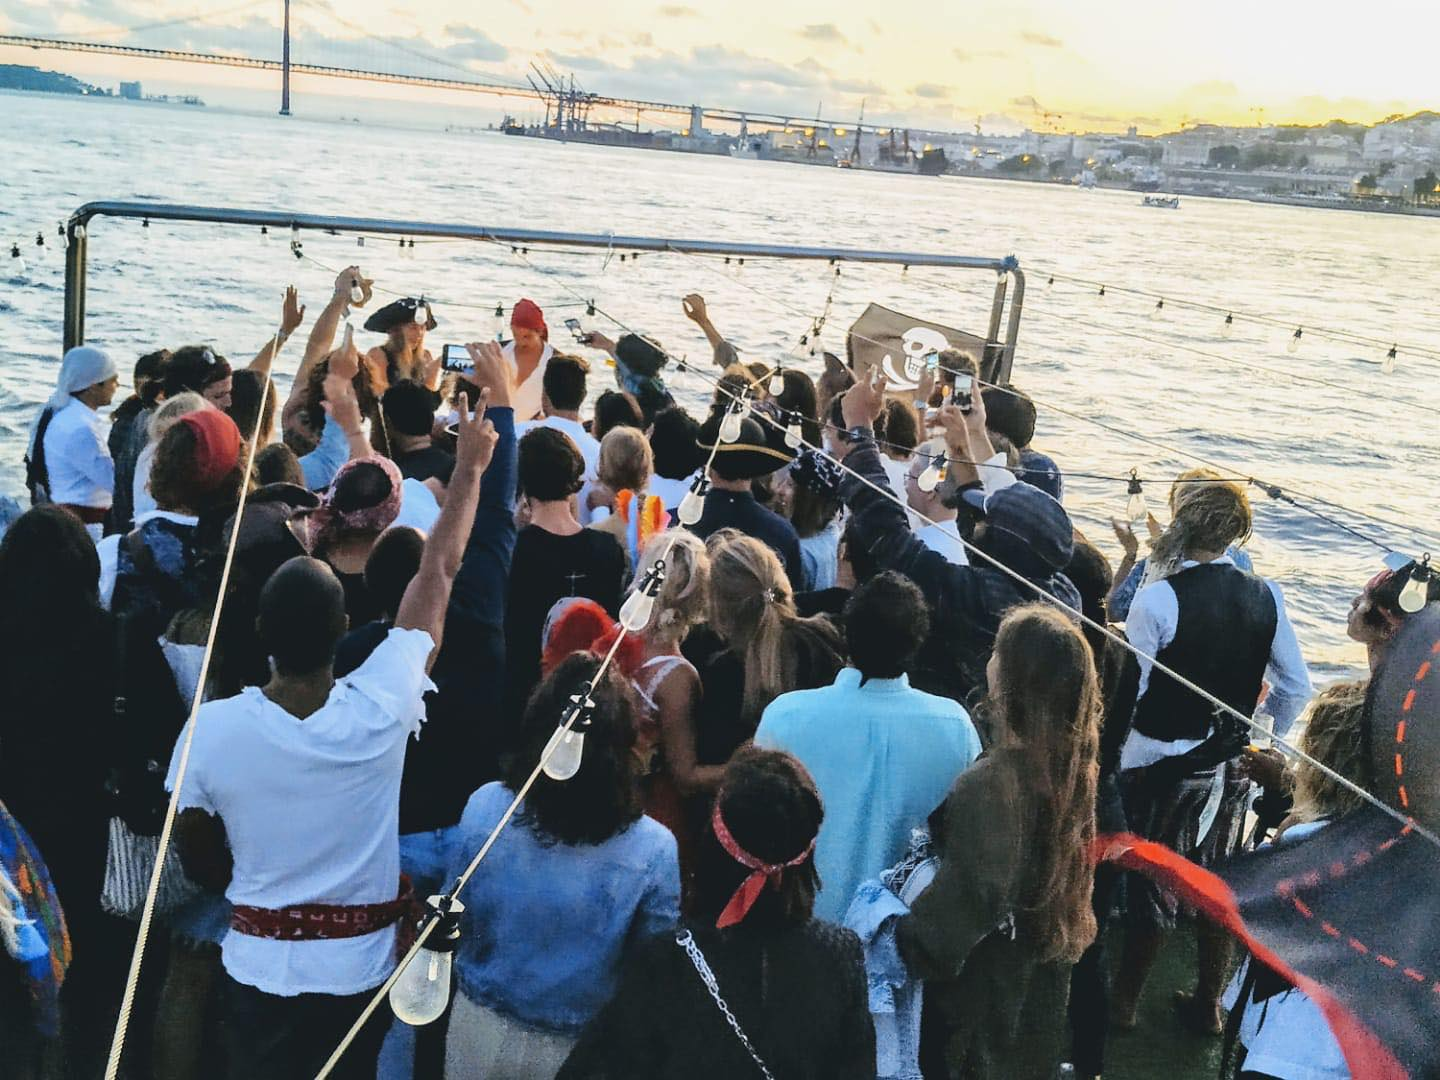 Carnaval Sunset Boat Party com bar aberto